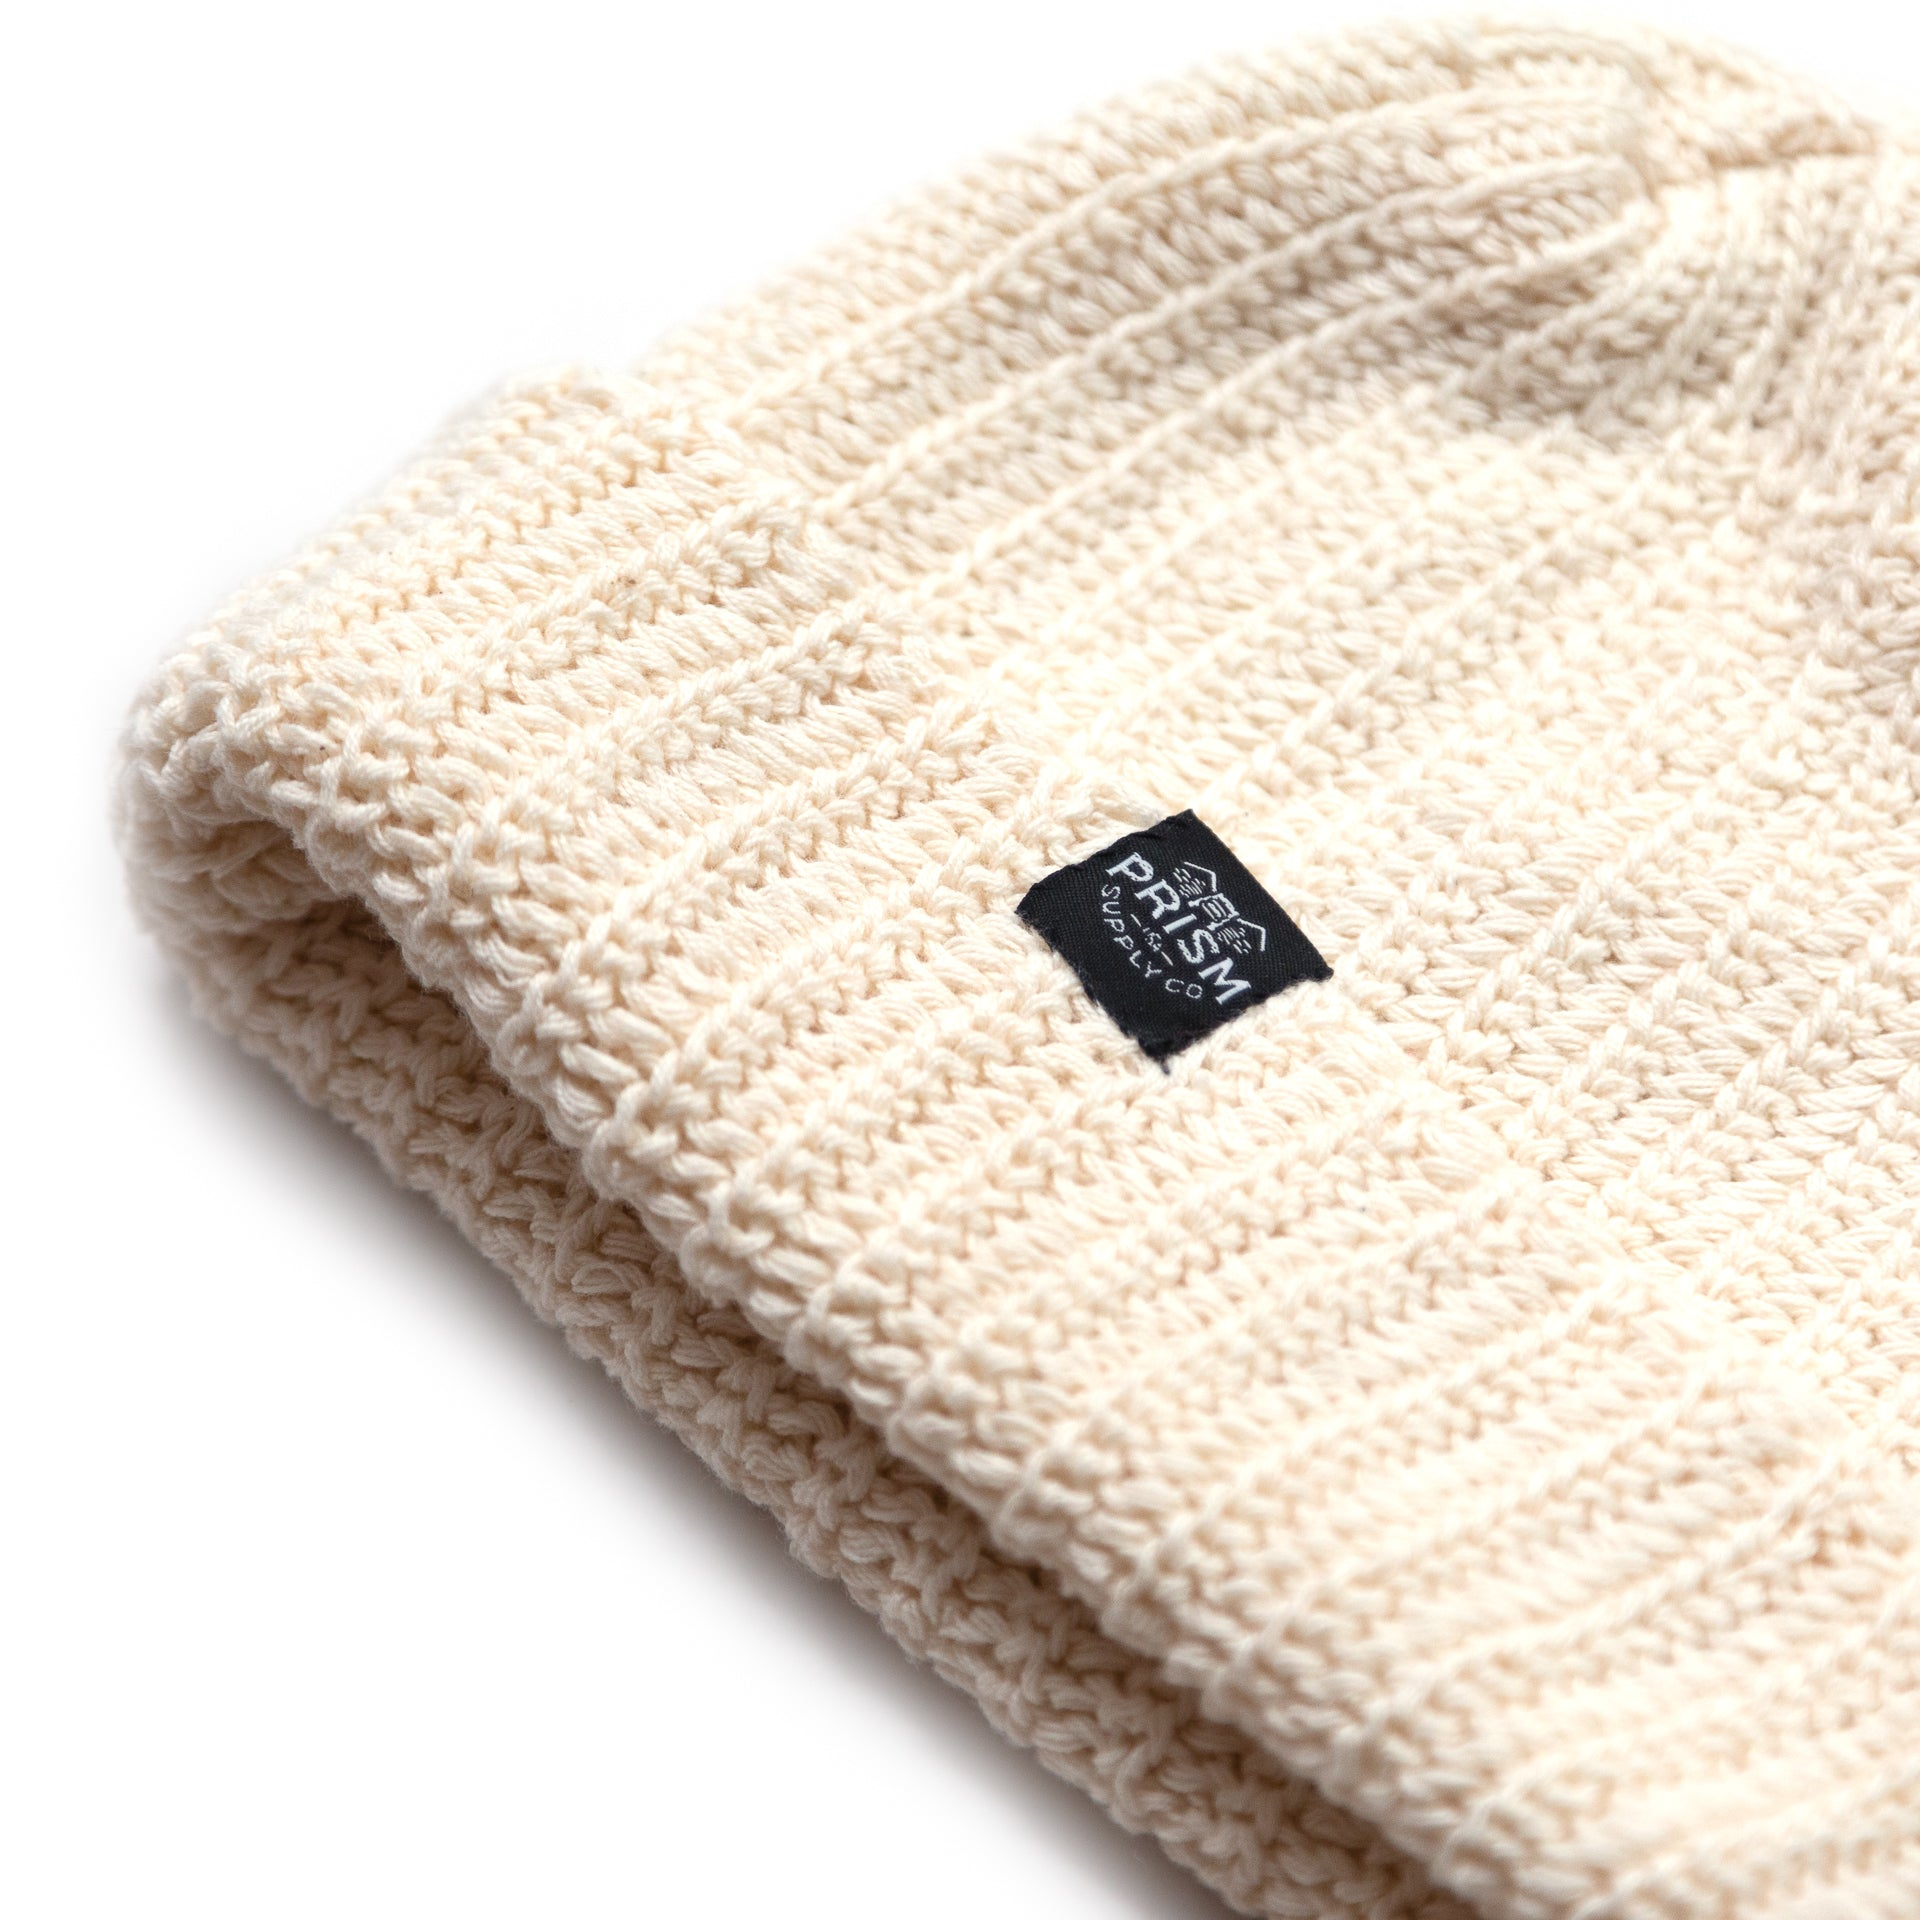 Patrol Beanie - Apparel and Accessories - Prism Supply